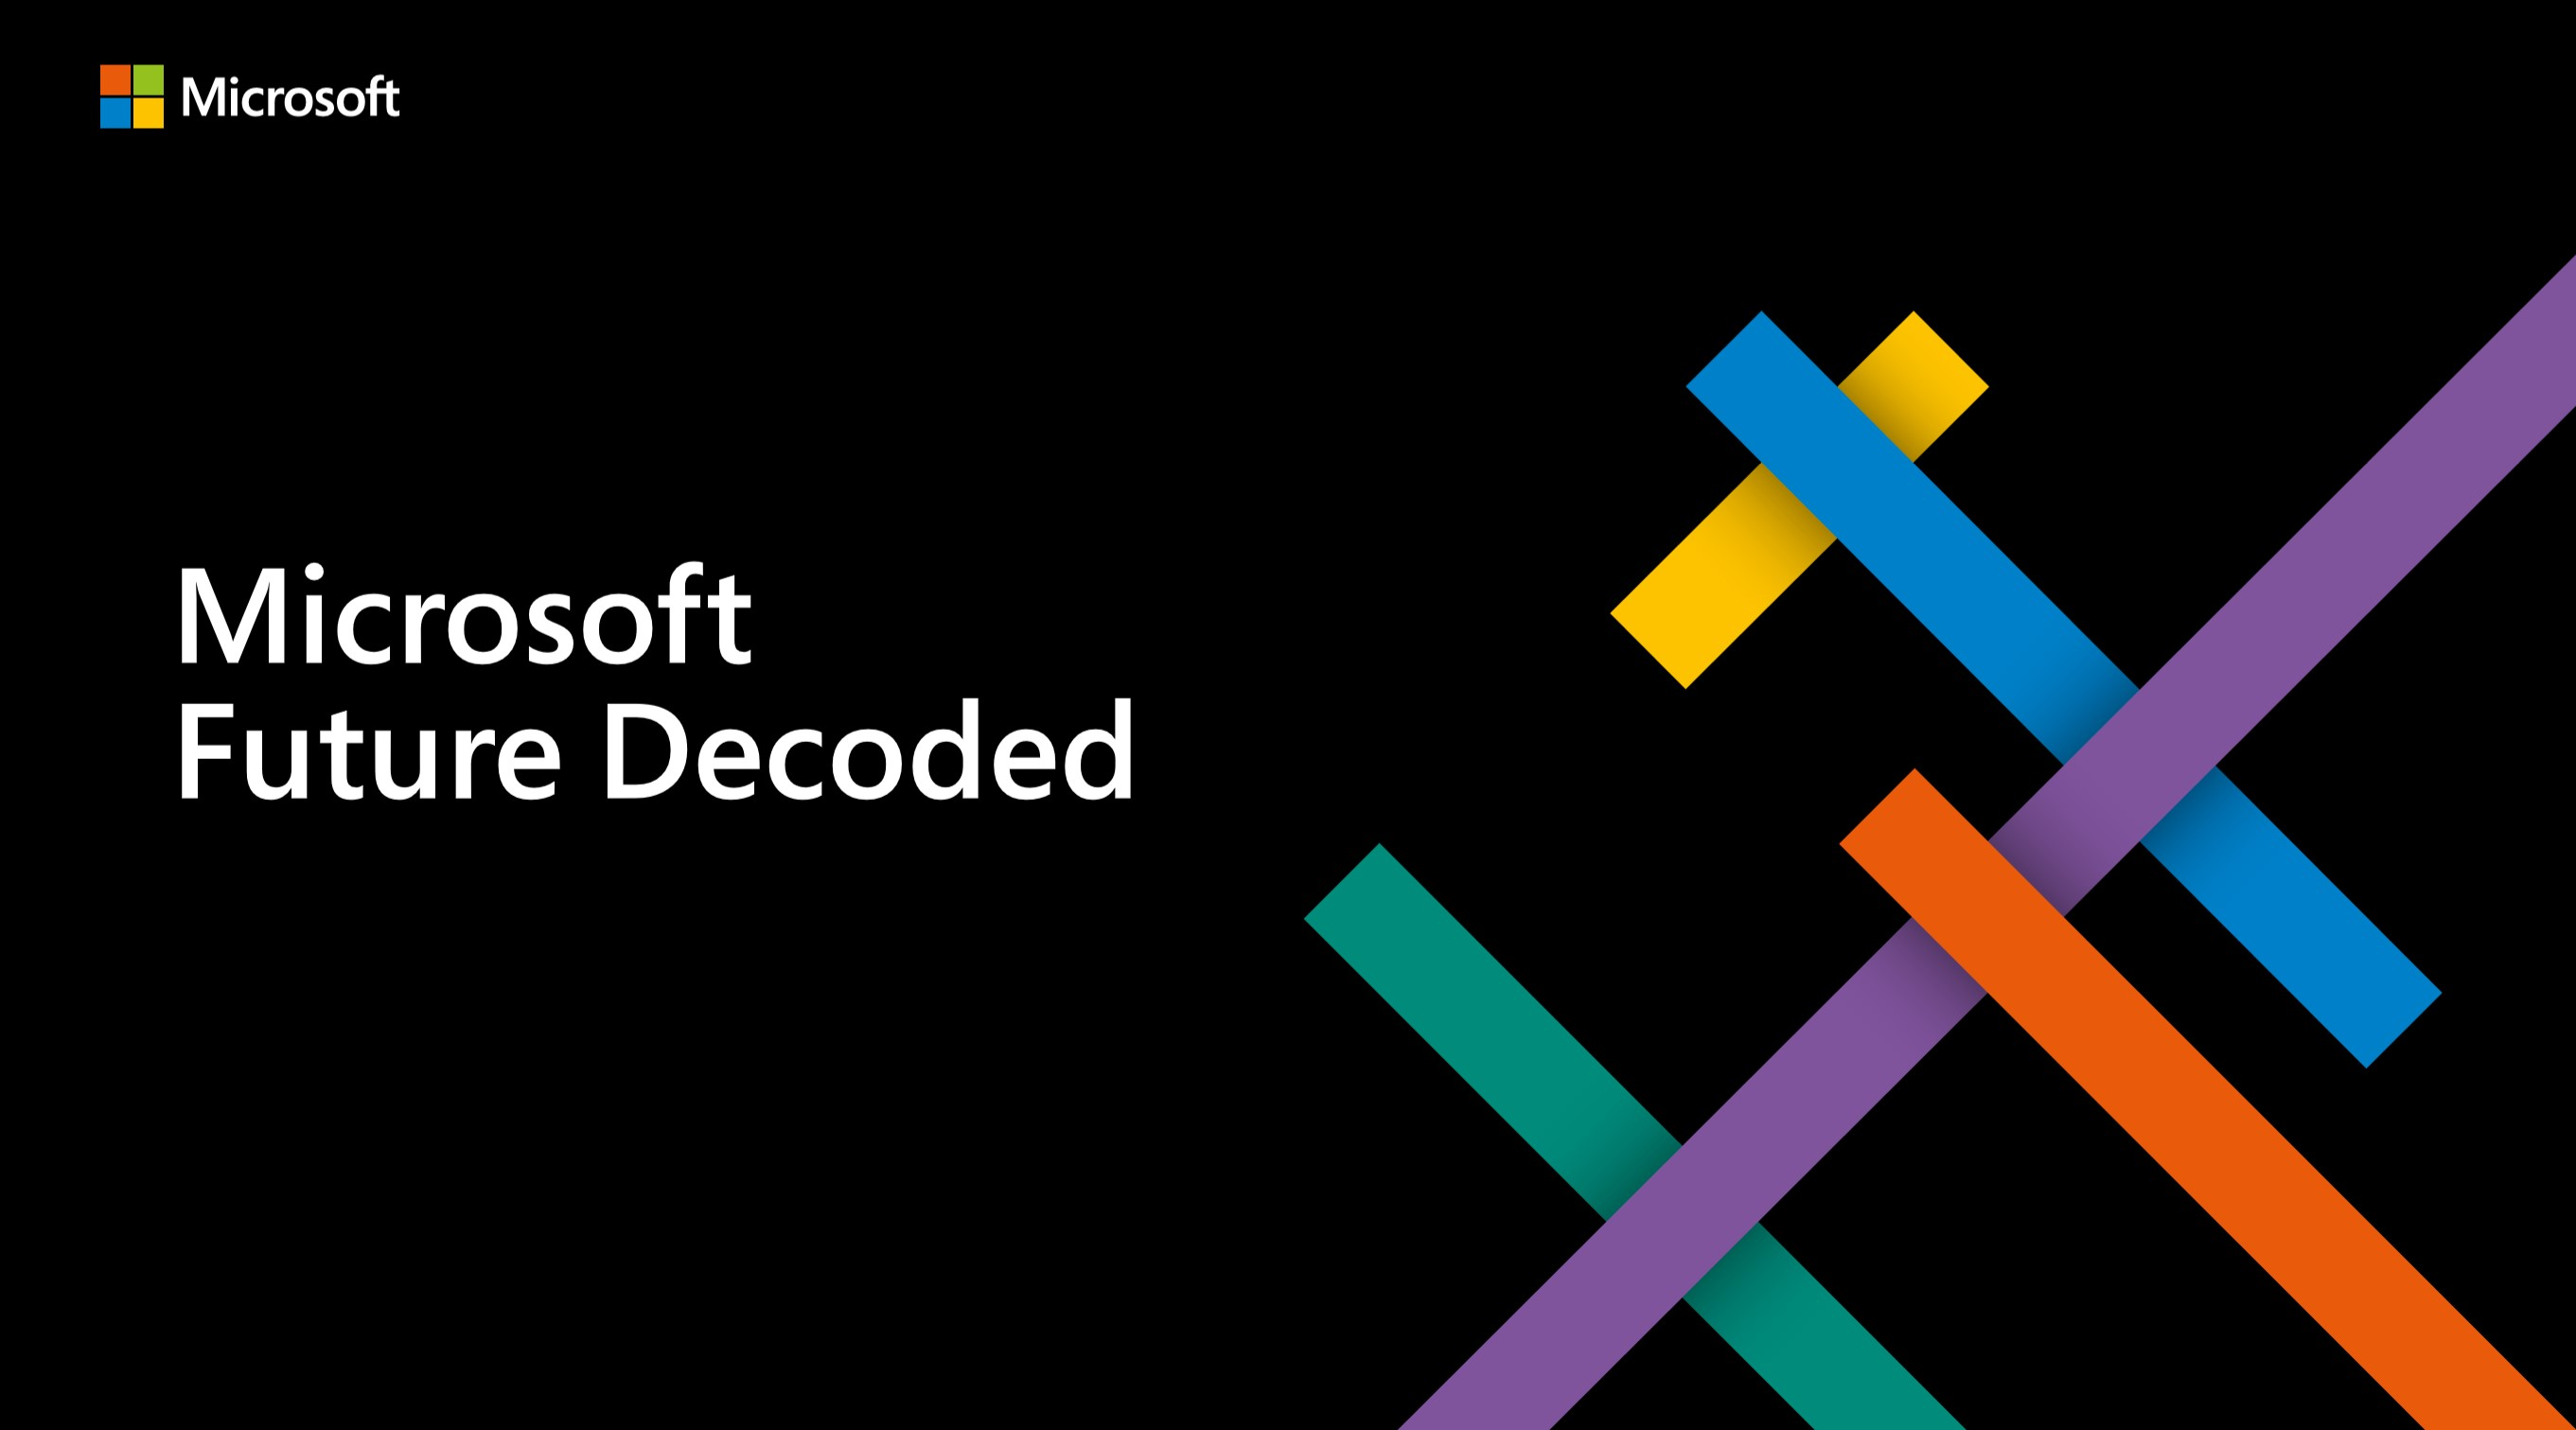 Future Decoded 2019